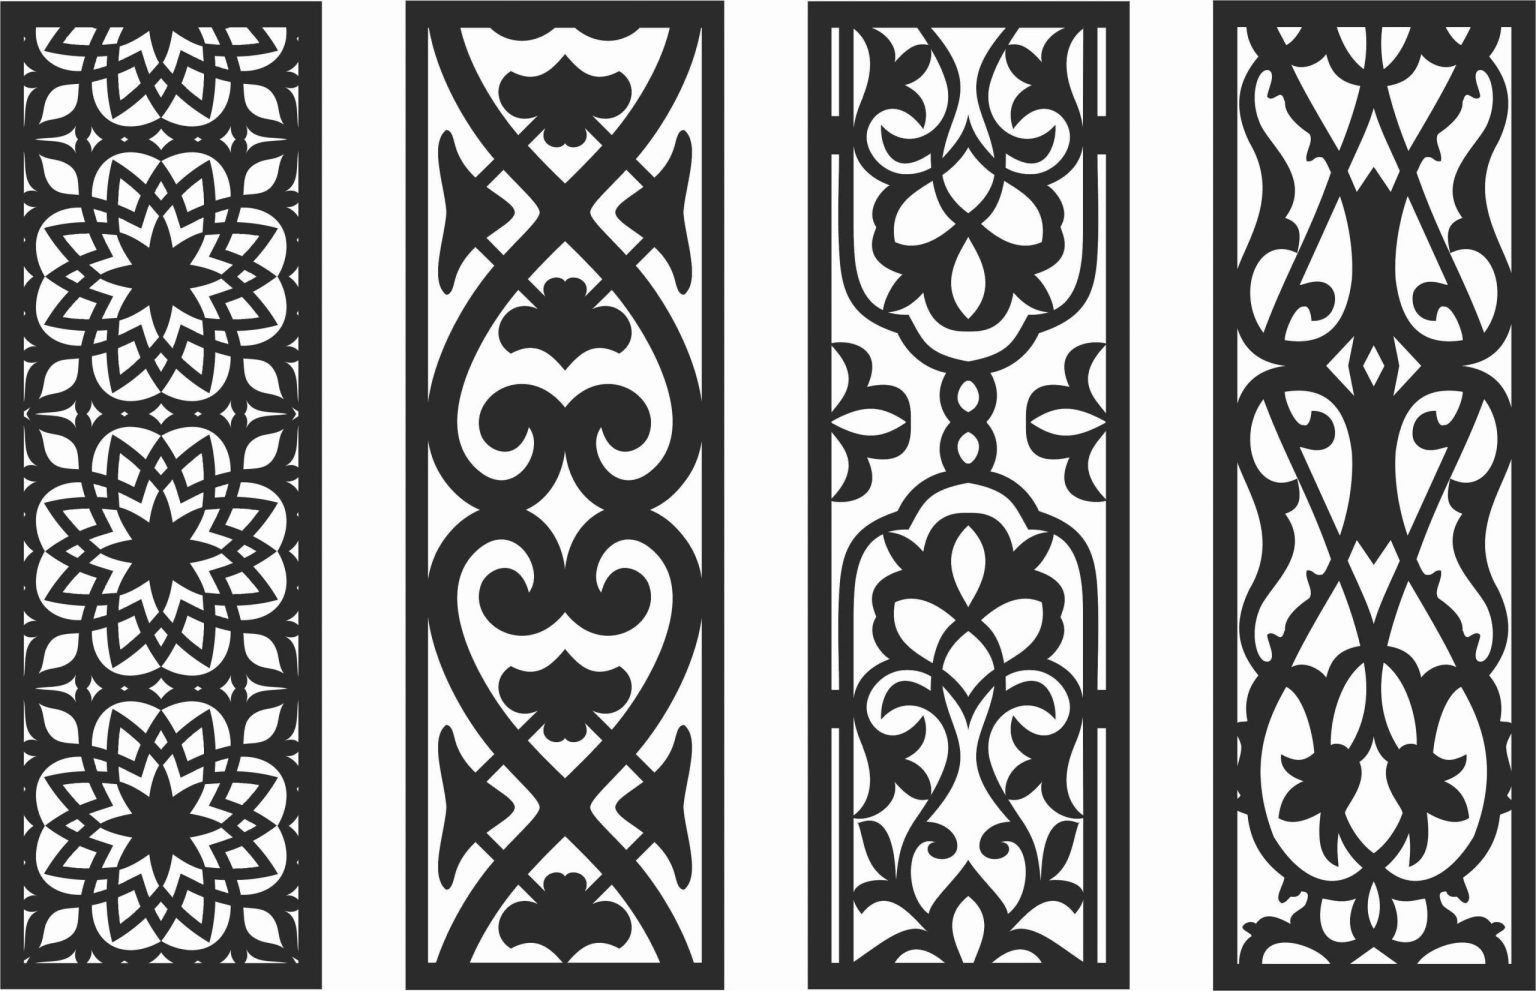 Decorative Screen Patterns For Laser Cutting 130 Free DXF File